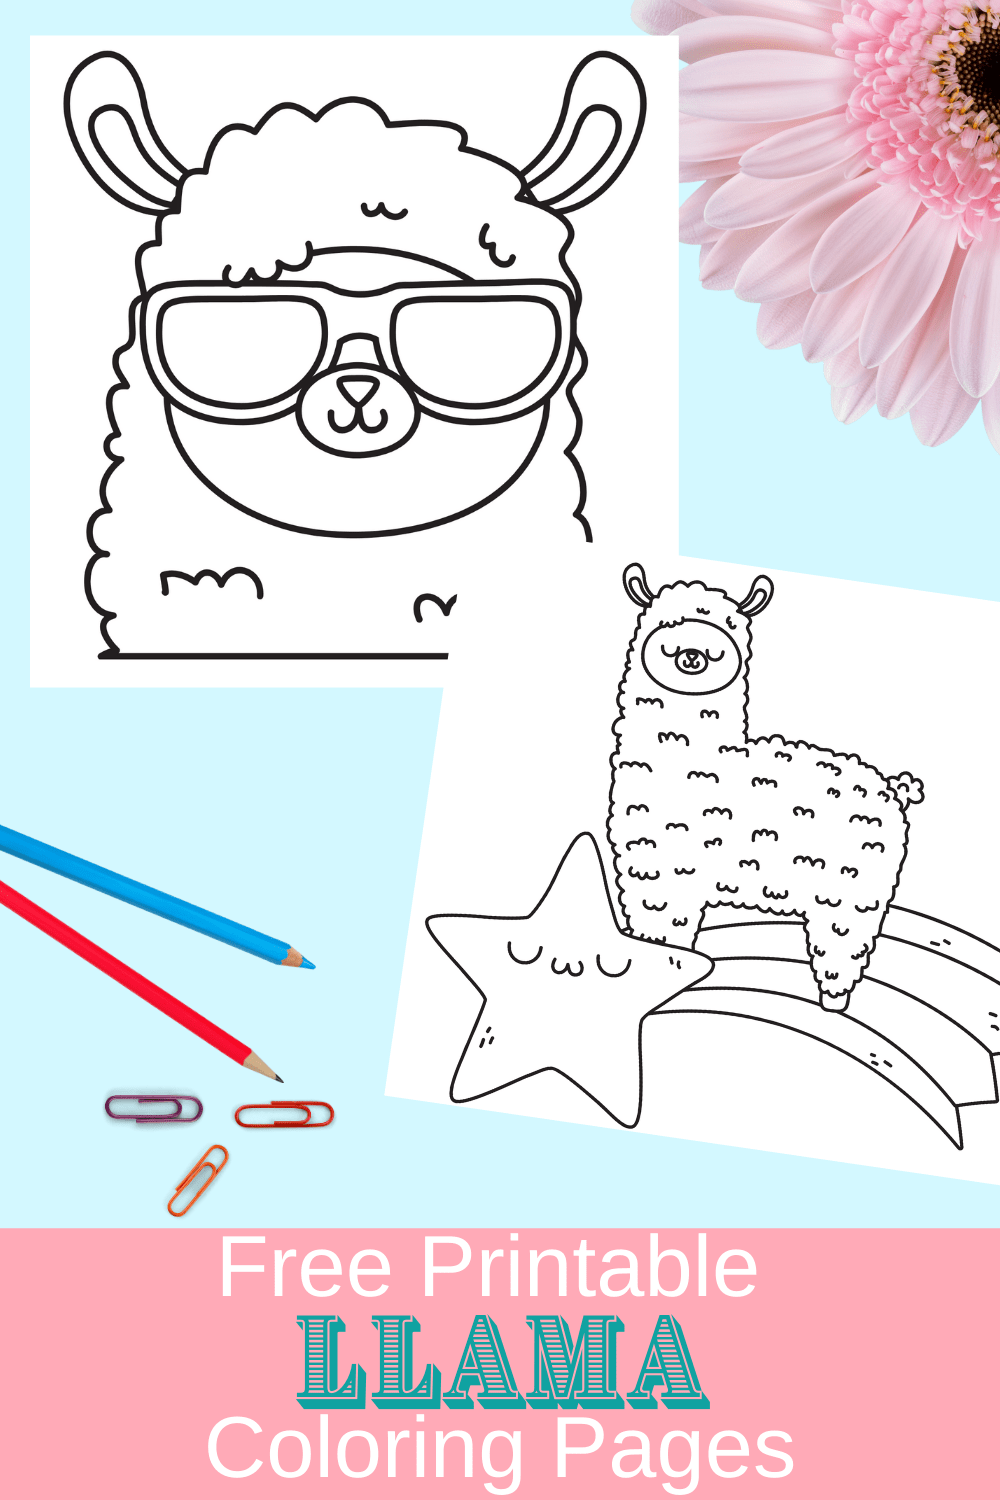 free printable llama coloring pages